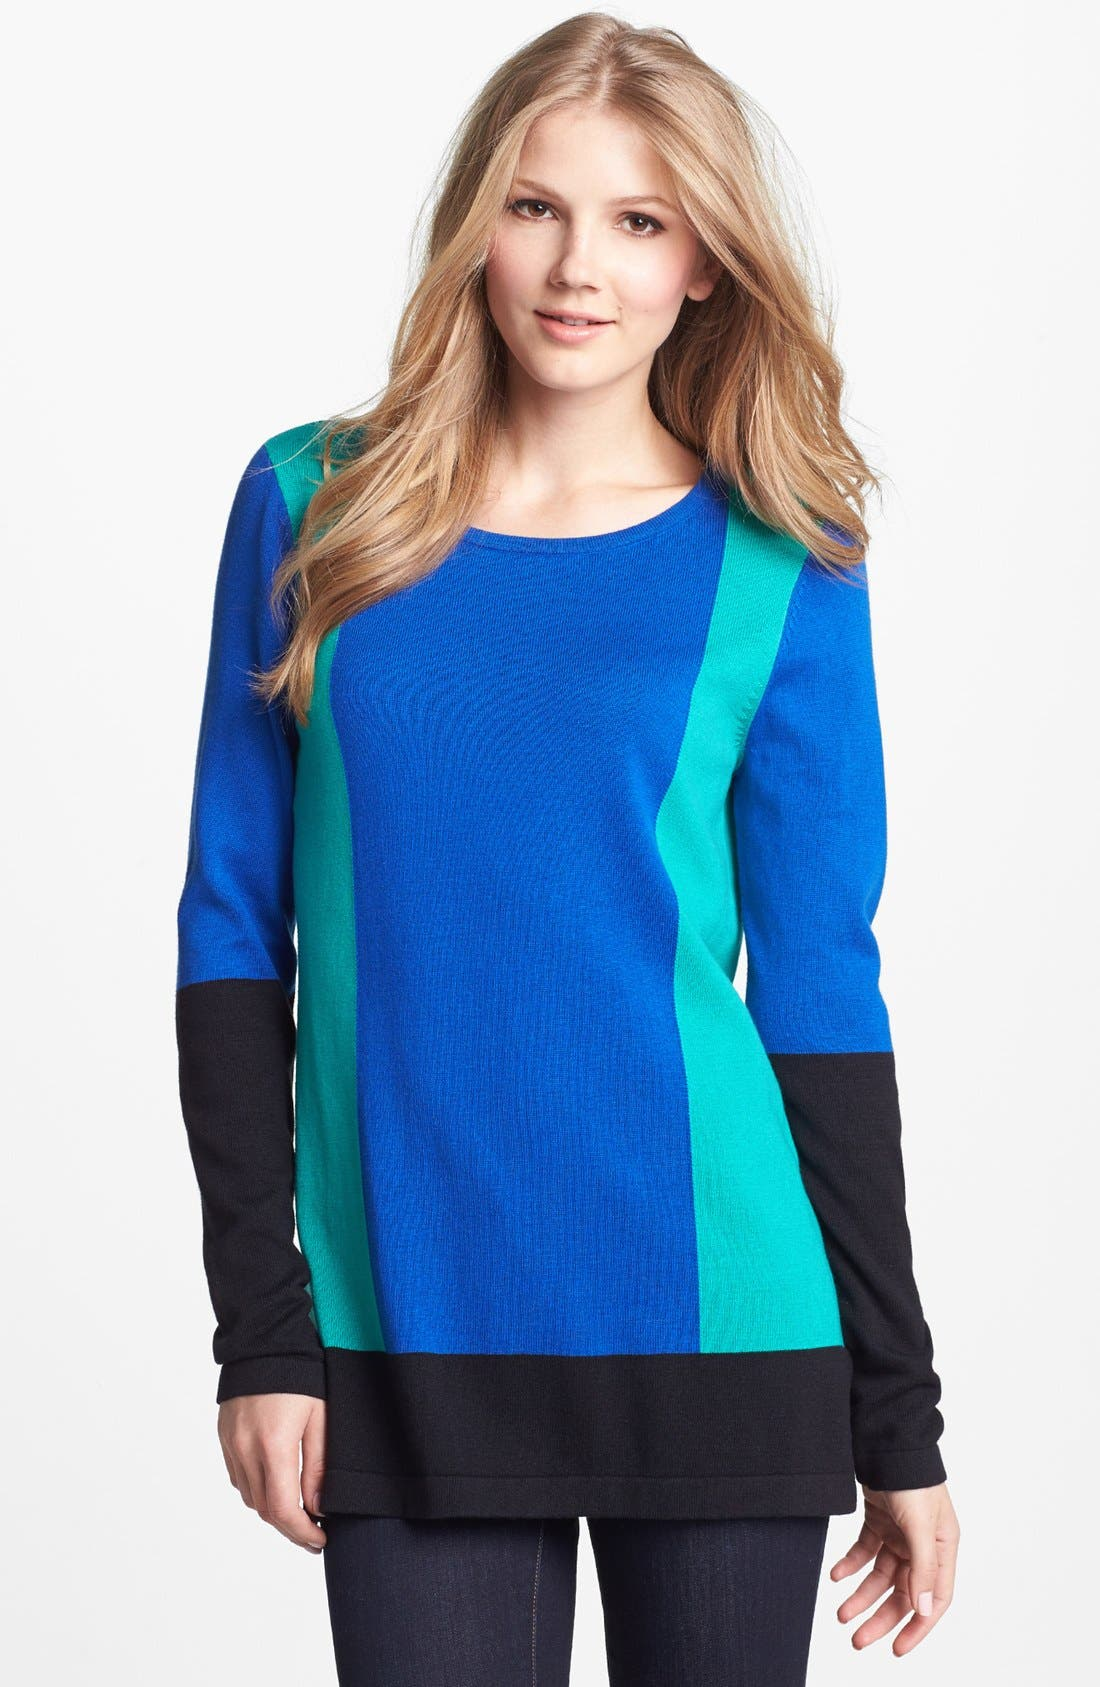 Main Image - Vince Camuto Colorblock Cotton Blend Sweater